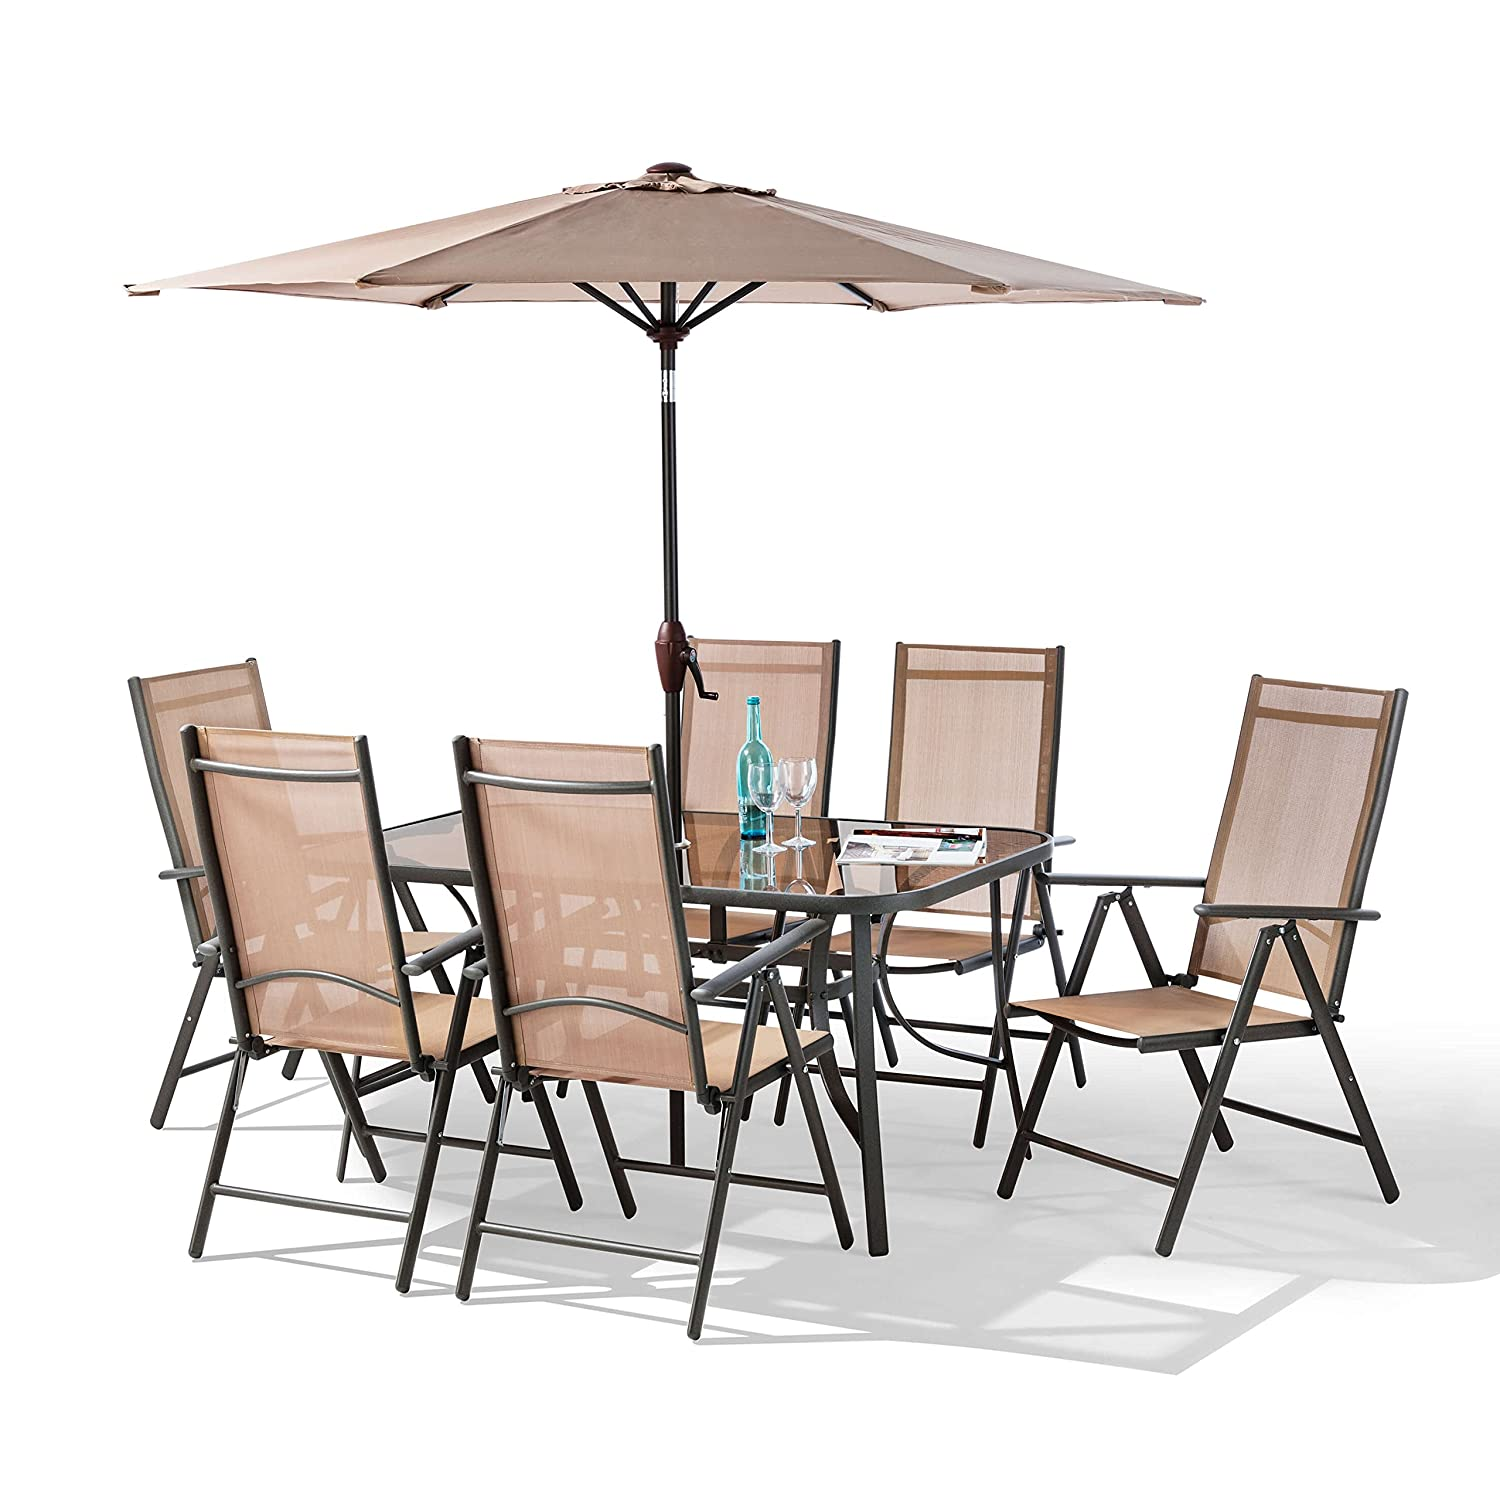 Santorini Garden and Patio Set New 2017 Model Now With 100